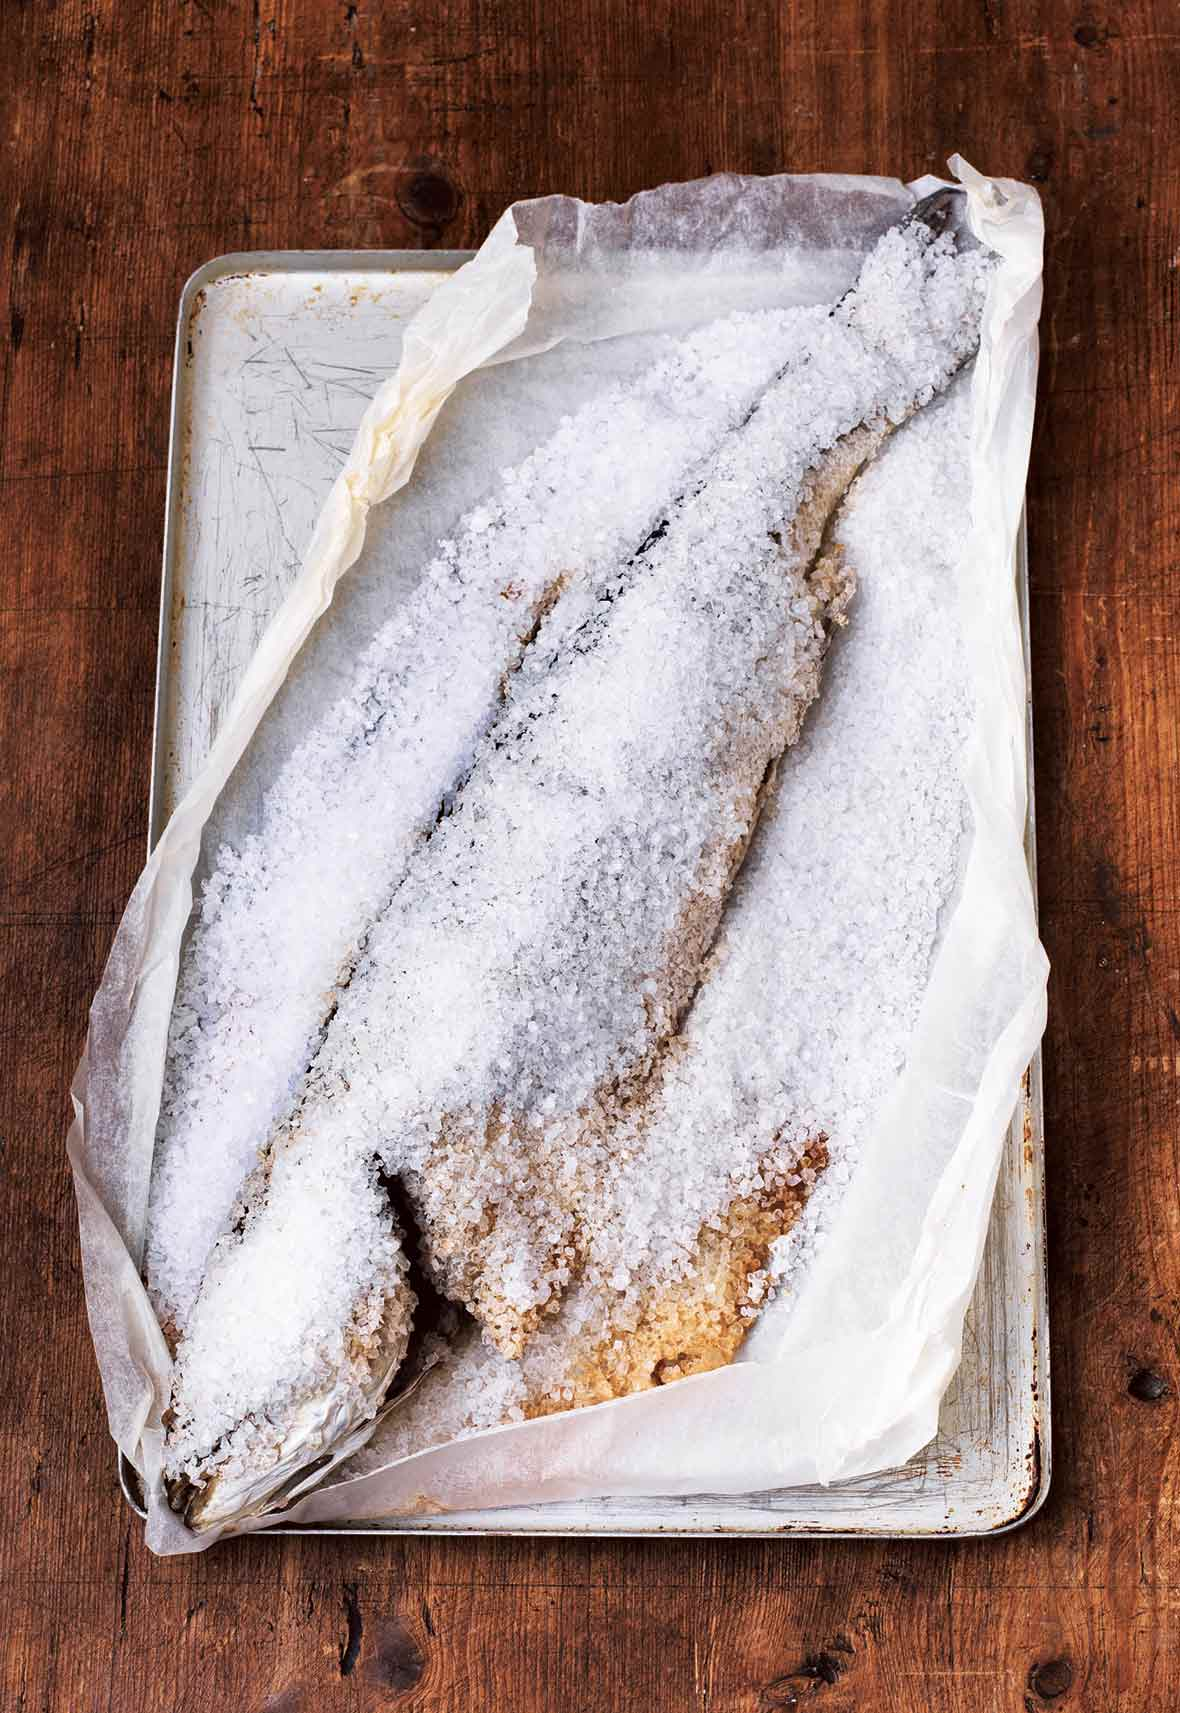 Salt baked fish recipe leite 39 s culinaria for Baking frozen fish